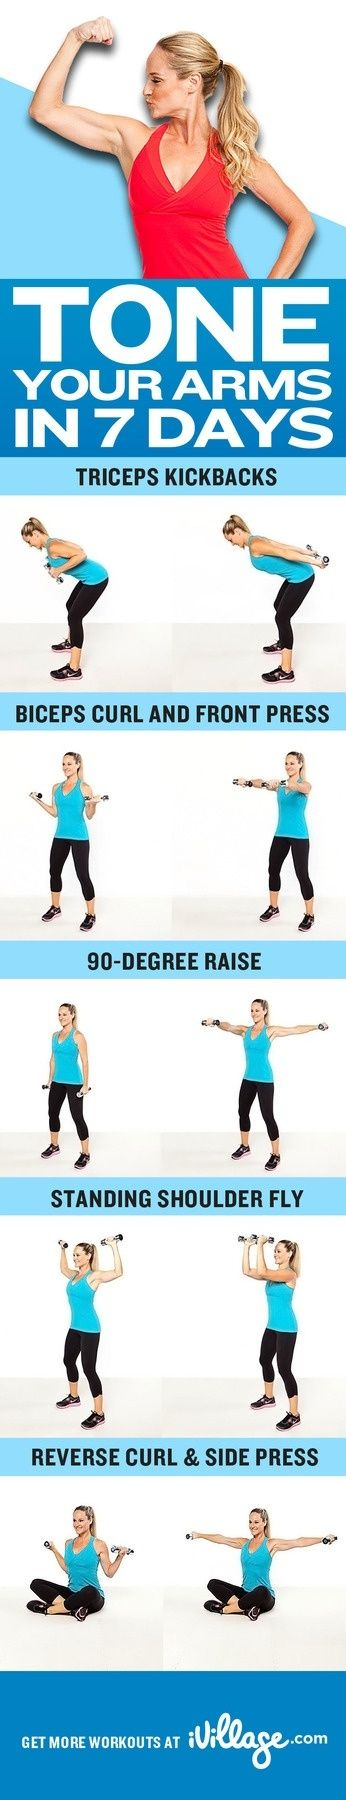 Arm Workout For Women: 13 Exercises to Get Rid of Flabby Arms ...